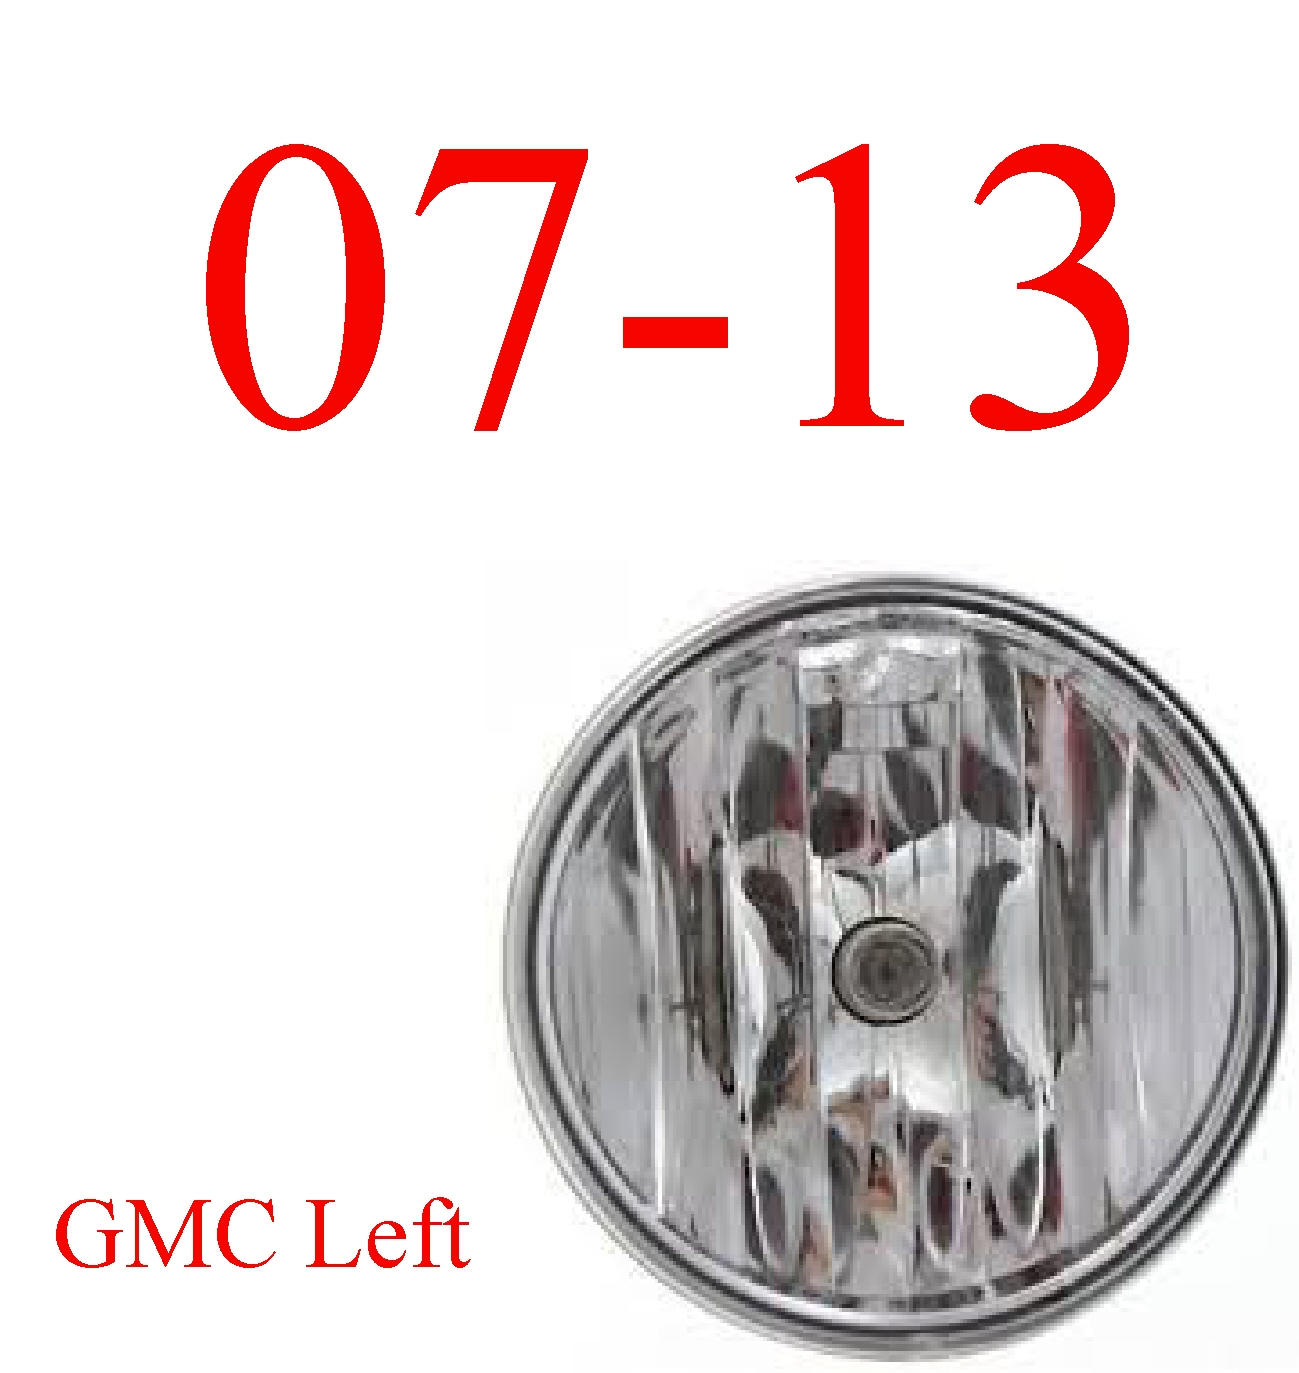 07-13 GMC Left Fog Light, Complete Assembly